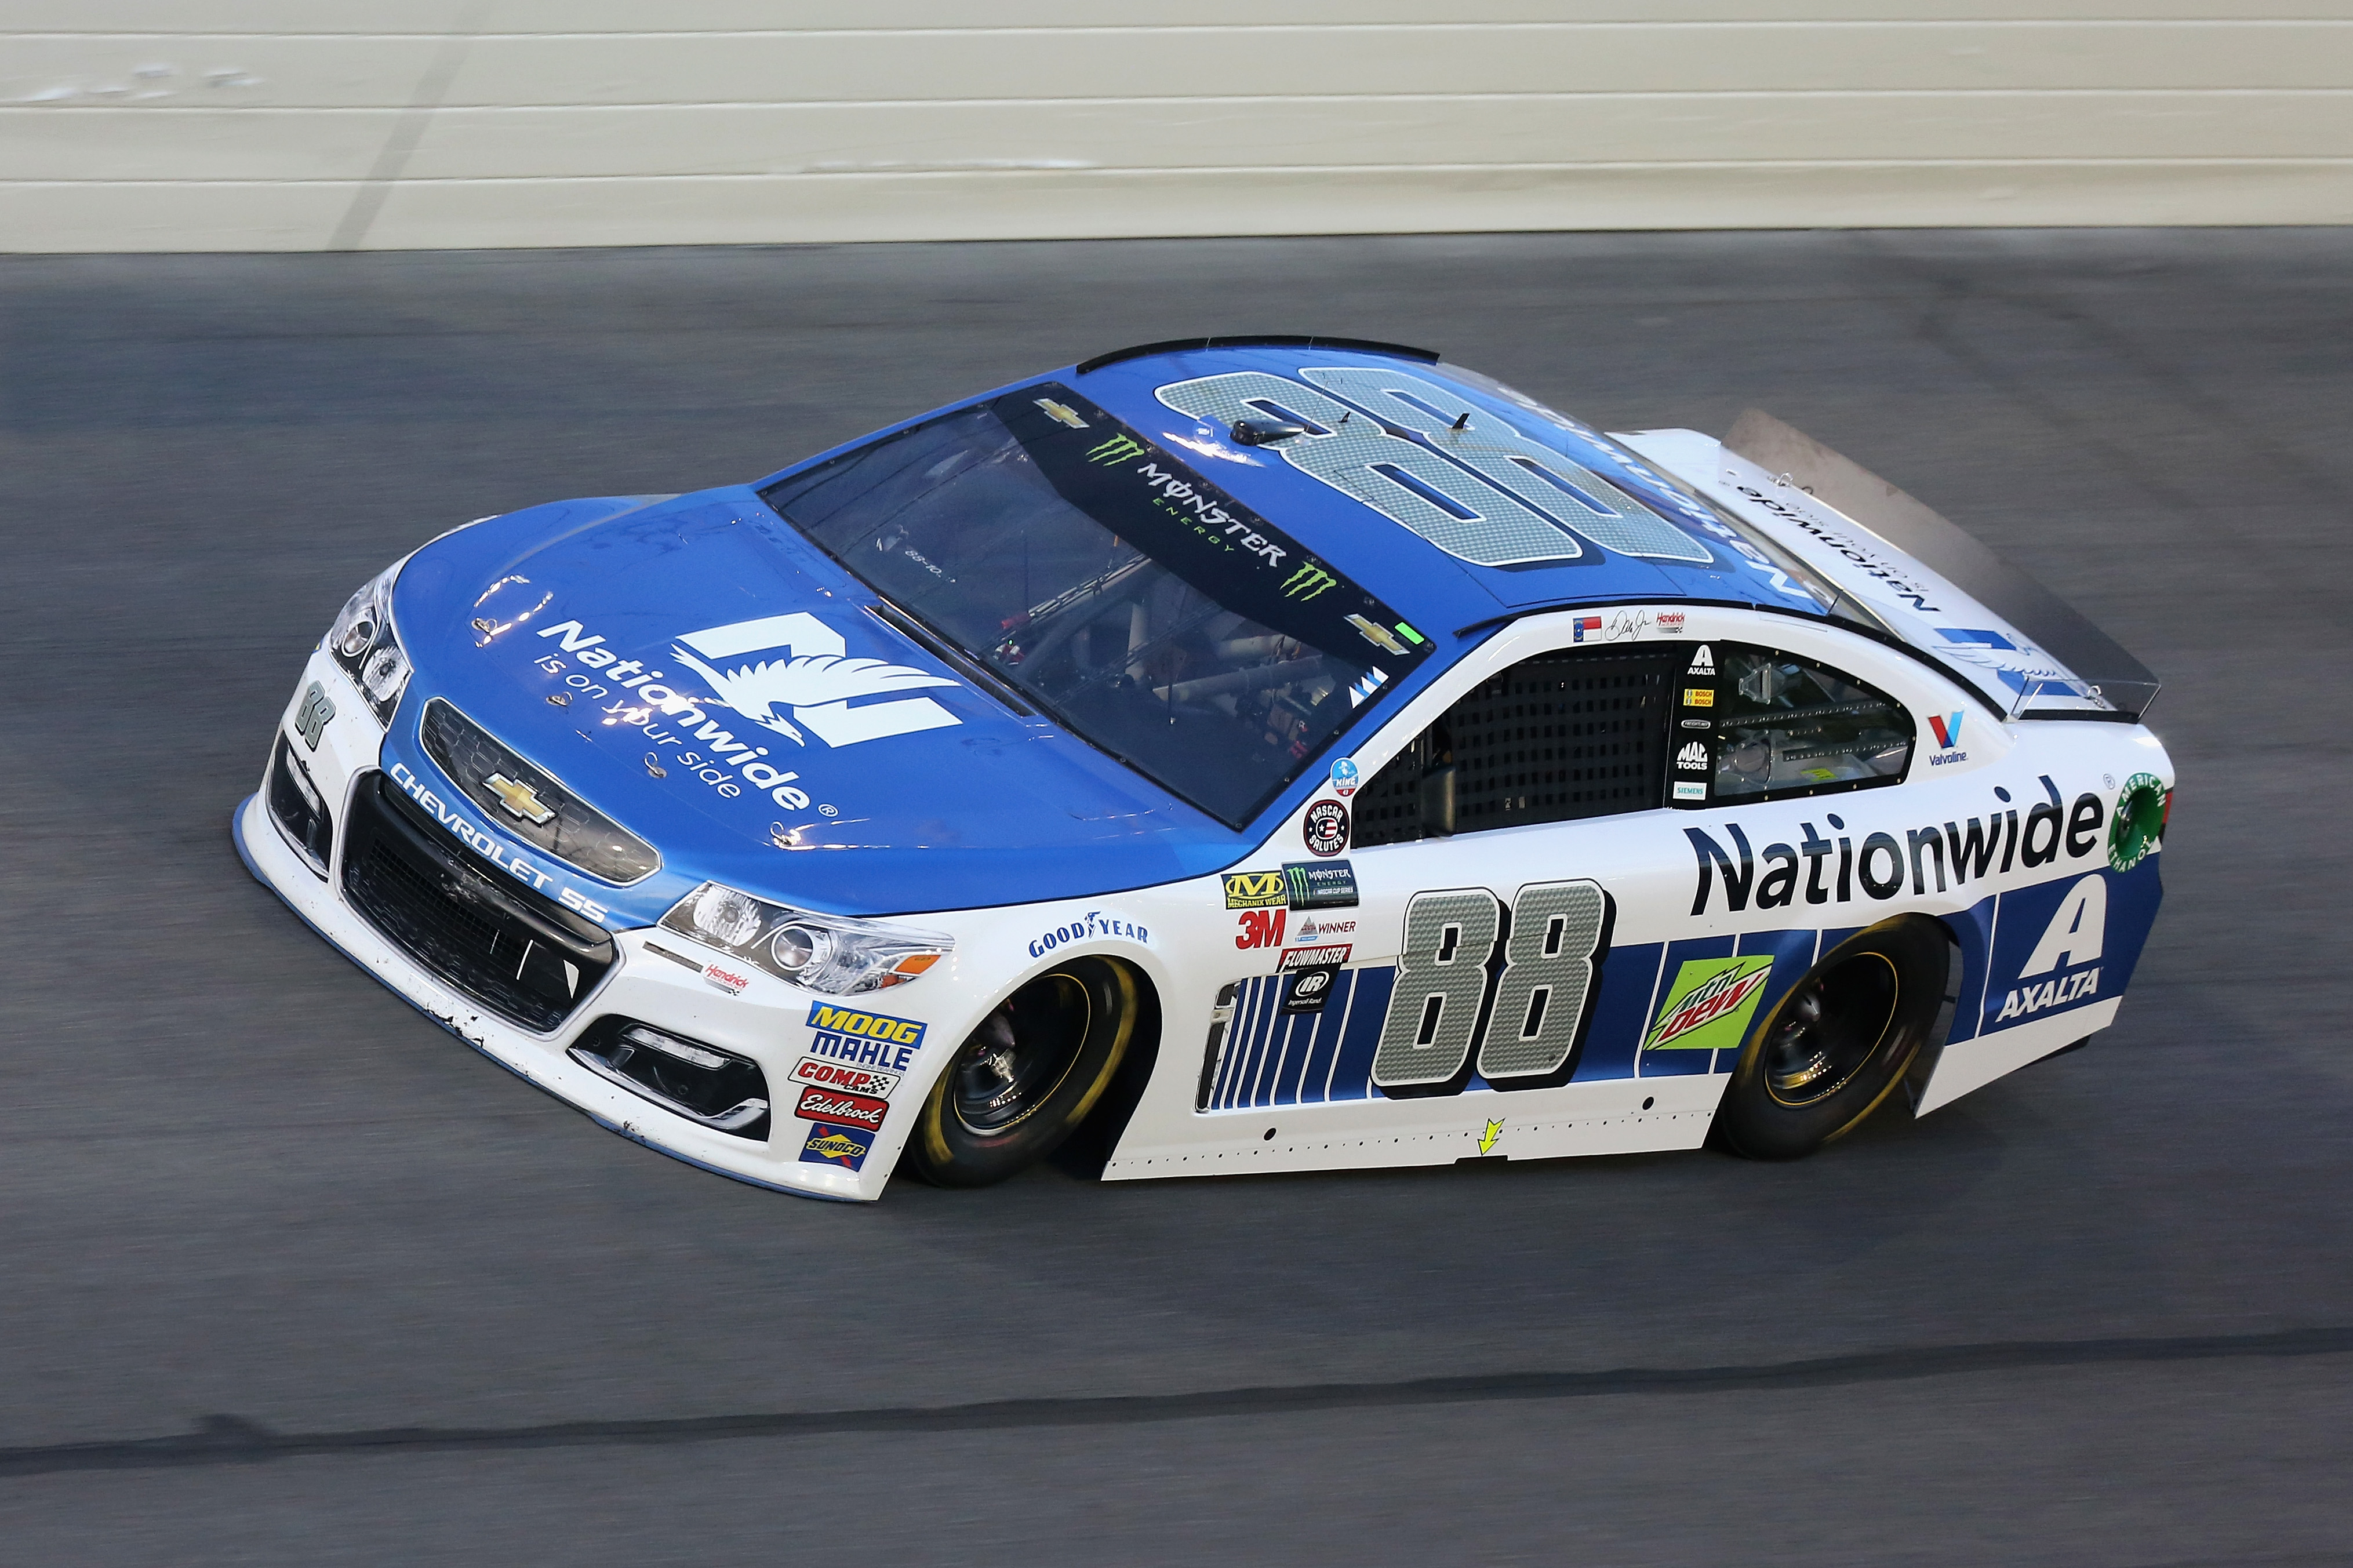 2018 chevrolet nascar cup car. brilliant nascar daytona beach fl u2013 july 01 dale earnhardt jr driver of the 88 nationwide  chevrolet races during monster energy nascar cup series 59th annual coke  inside 2018 chevrolet nascar cup car